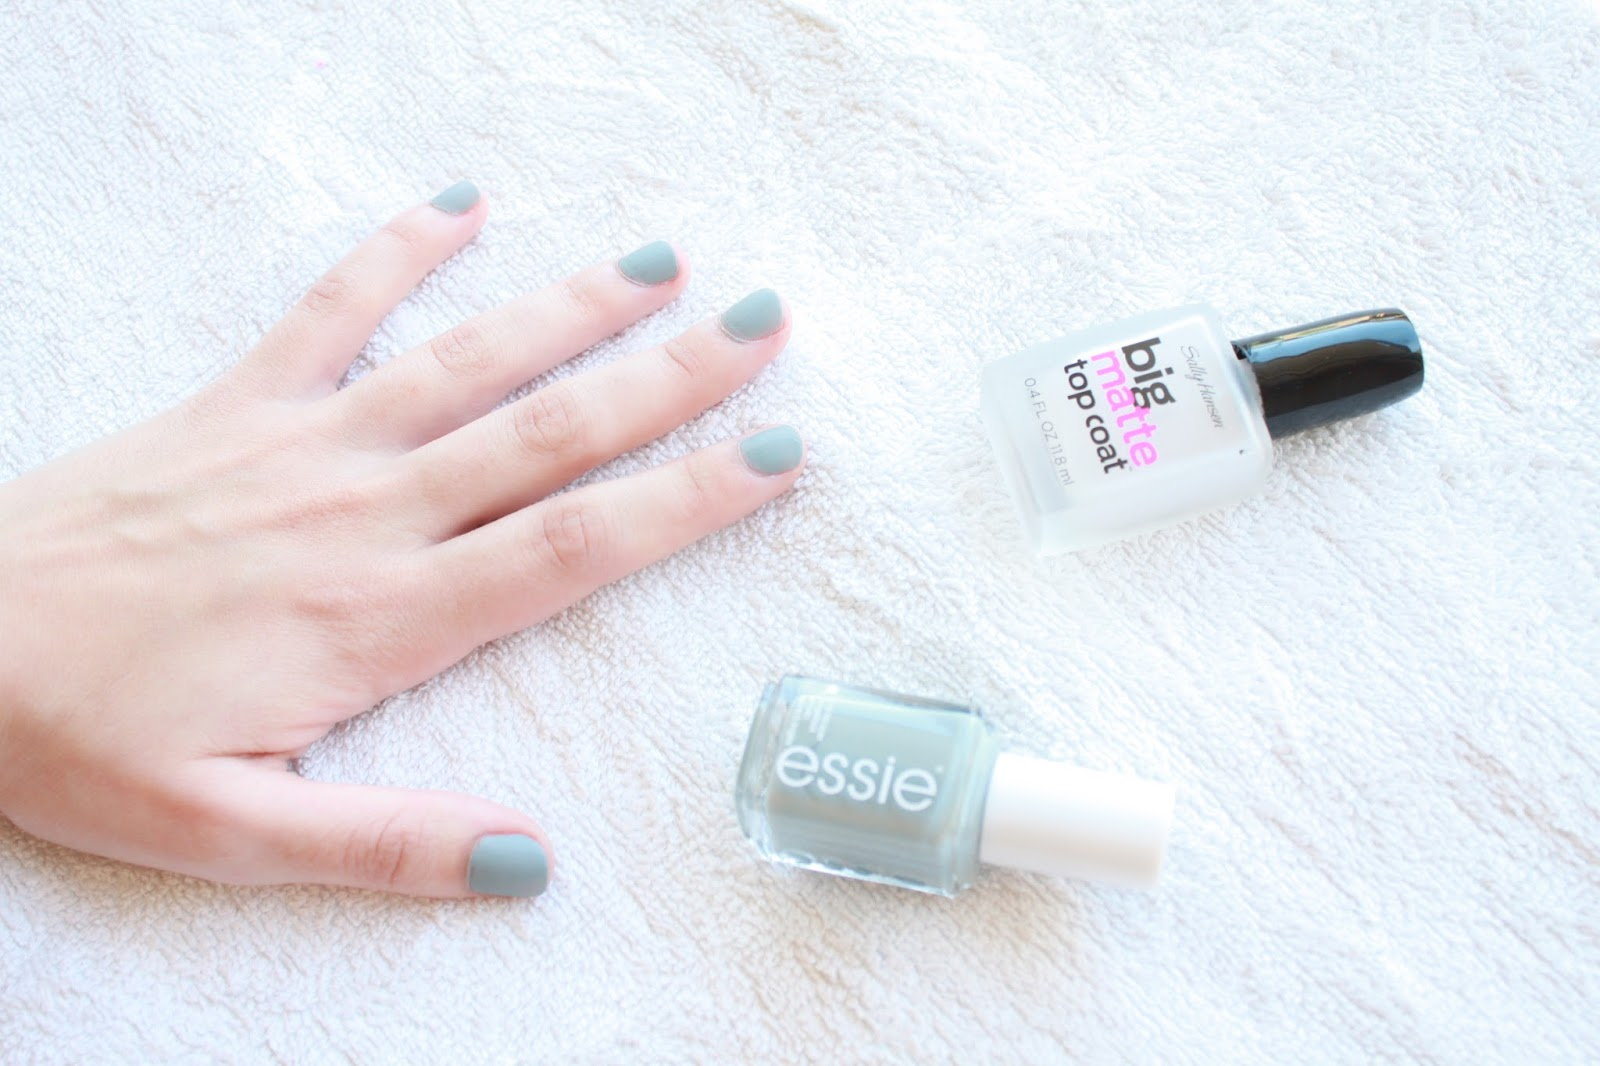 Sally Hansen Big Matte Top Coat with Essie in Maximillian Strasse-Her